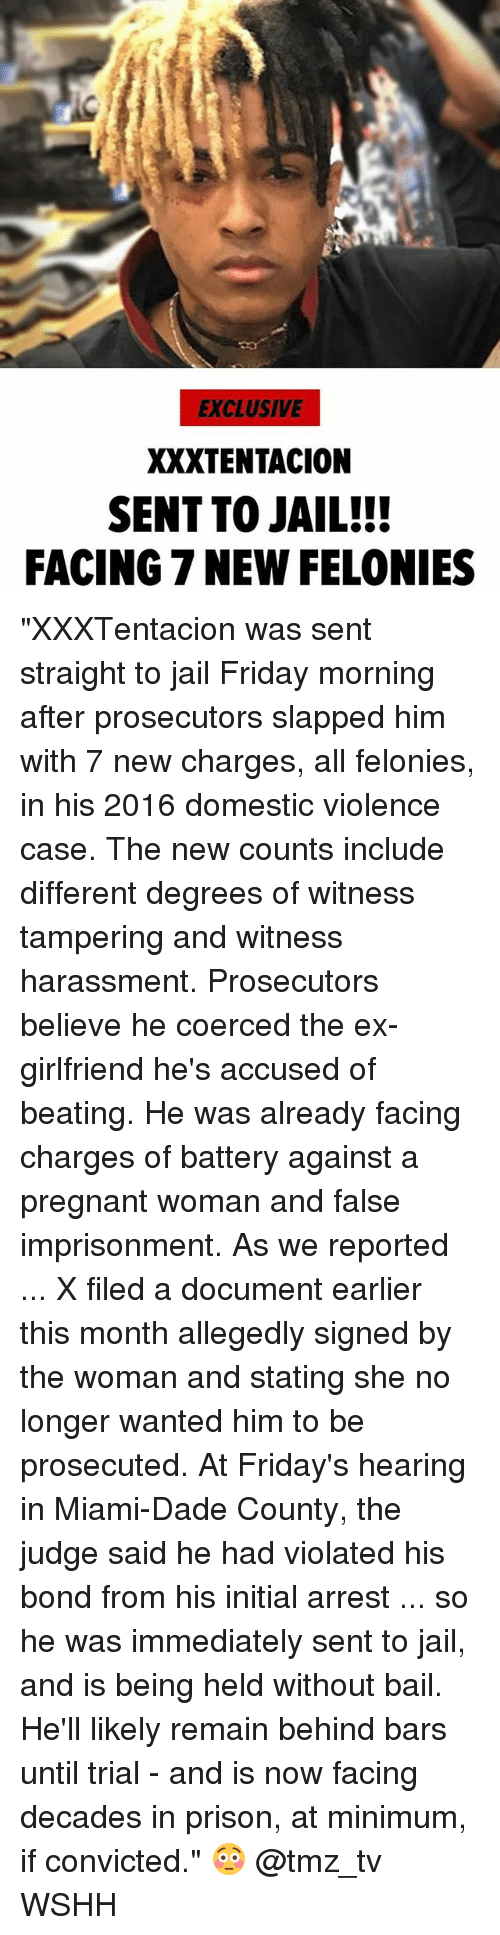 """Friday, Jail, and Memes: EXCLUSIVE  XXXTENTACION  SENT TO JAIL!!  FACING 7 NEW FELONIES """"XXXTentacion was sent straight to jail Friday morning after prosecutors slapped him with 7 new charges, all felonies, in his 2016 domestic violence case. The new counts include different degrees of witness tampering and witness harassment. Prosecutors believe he coerced the ex-girlfriend he's accused of beating. He was already facing charges of battery against a pregnant woman and false imprisonment. As we reported ... X filed a document earlier this month allegedly signed by the woman and stating she no longer wanted him to be prosecuted. At Friday's hearing in Miami-Dade County, the judge said he had violated his bond from his initial arrest ... so he was immediately sent to jail, and is being held without bail. He'll likely remain behind bars until trial - and is now facing decades in prison, at minimum, if convicted."""" 😳 @tmz_tv WSHH"""